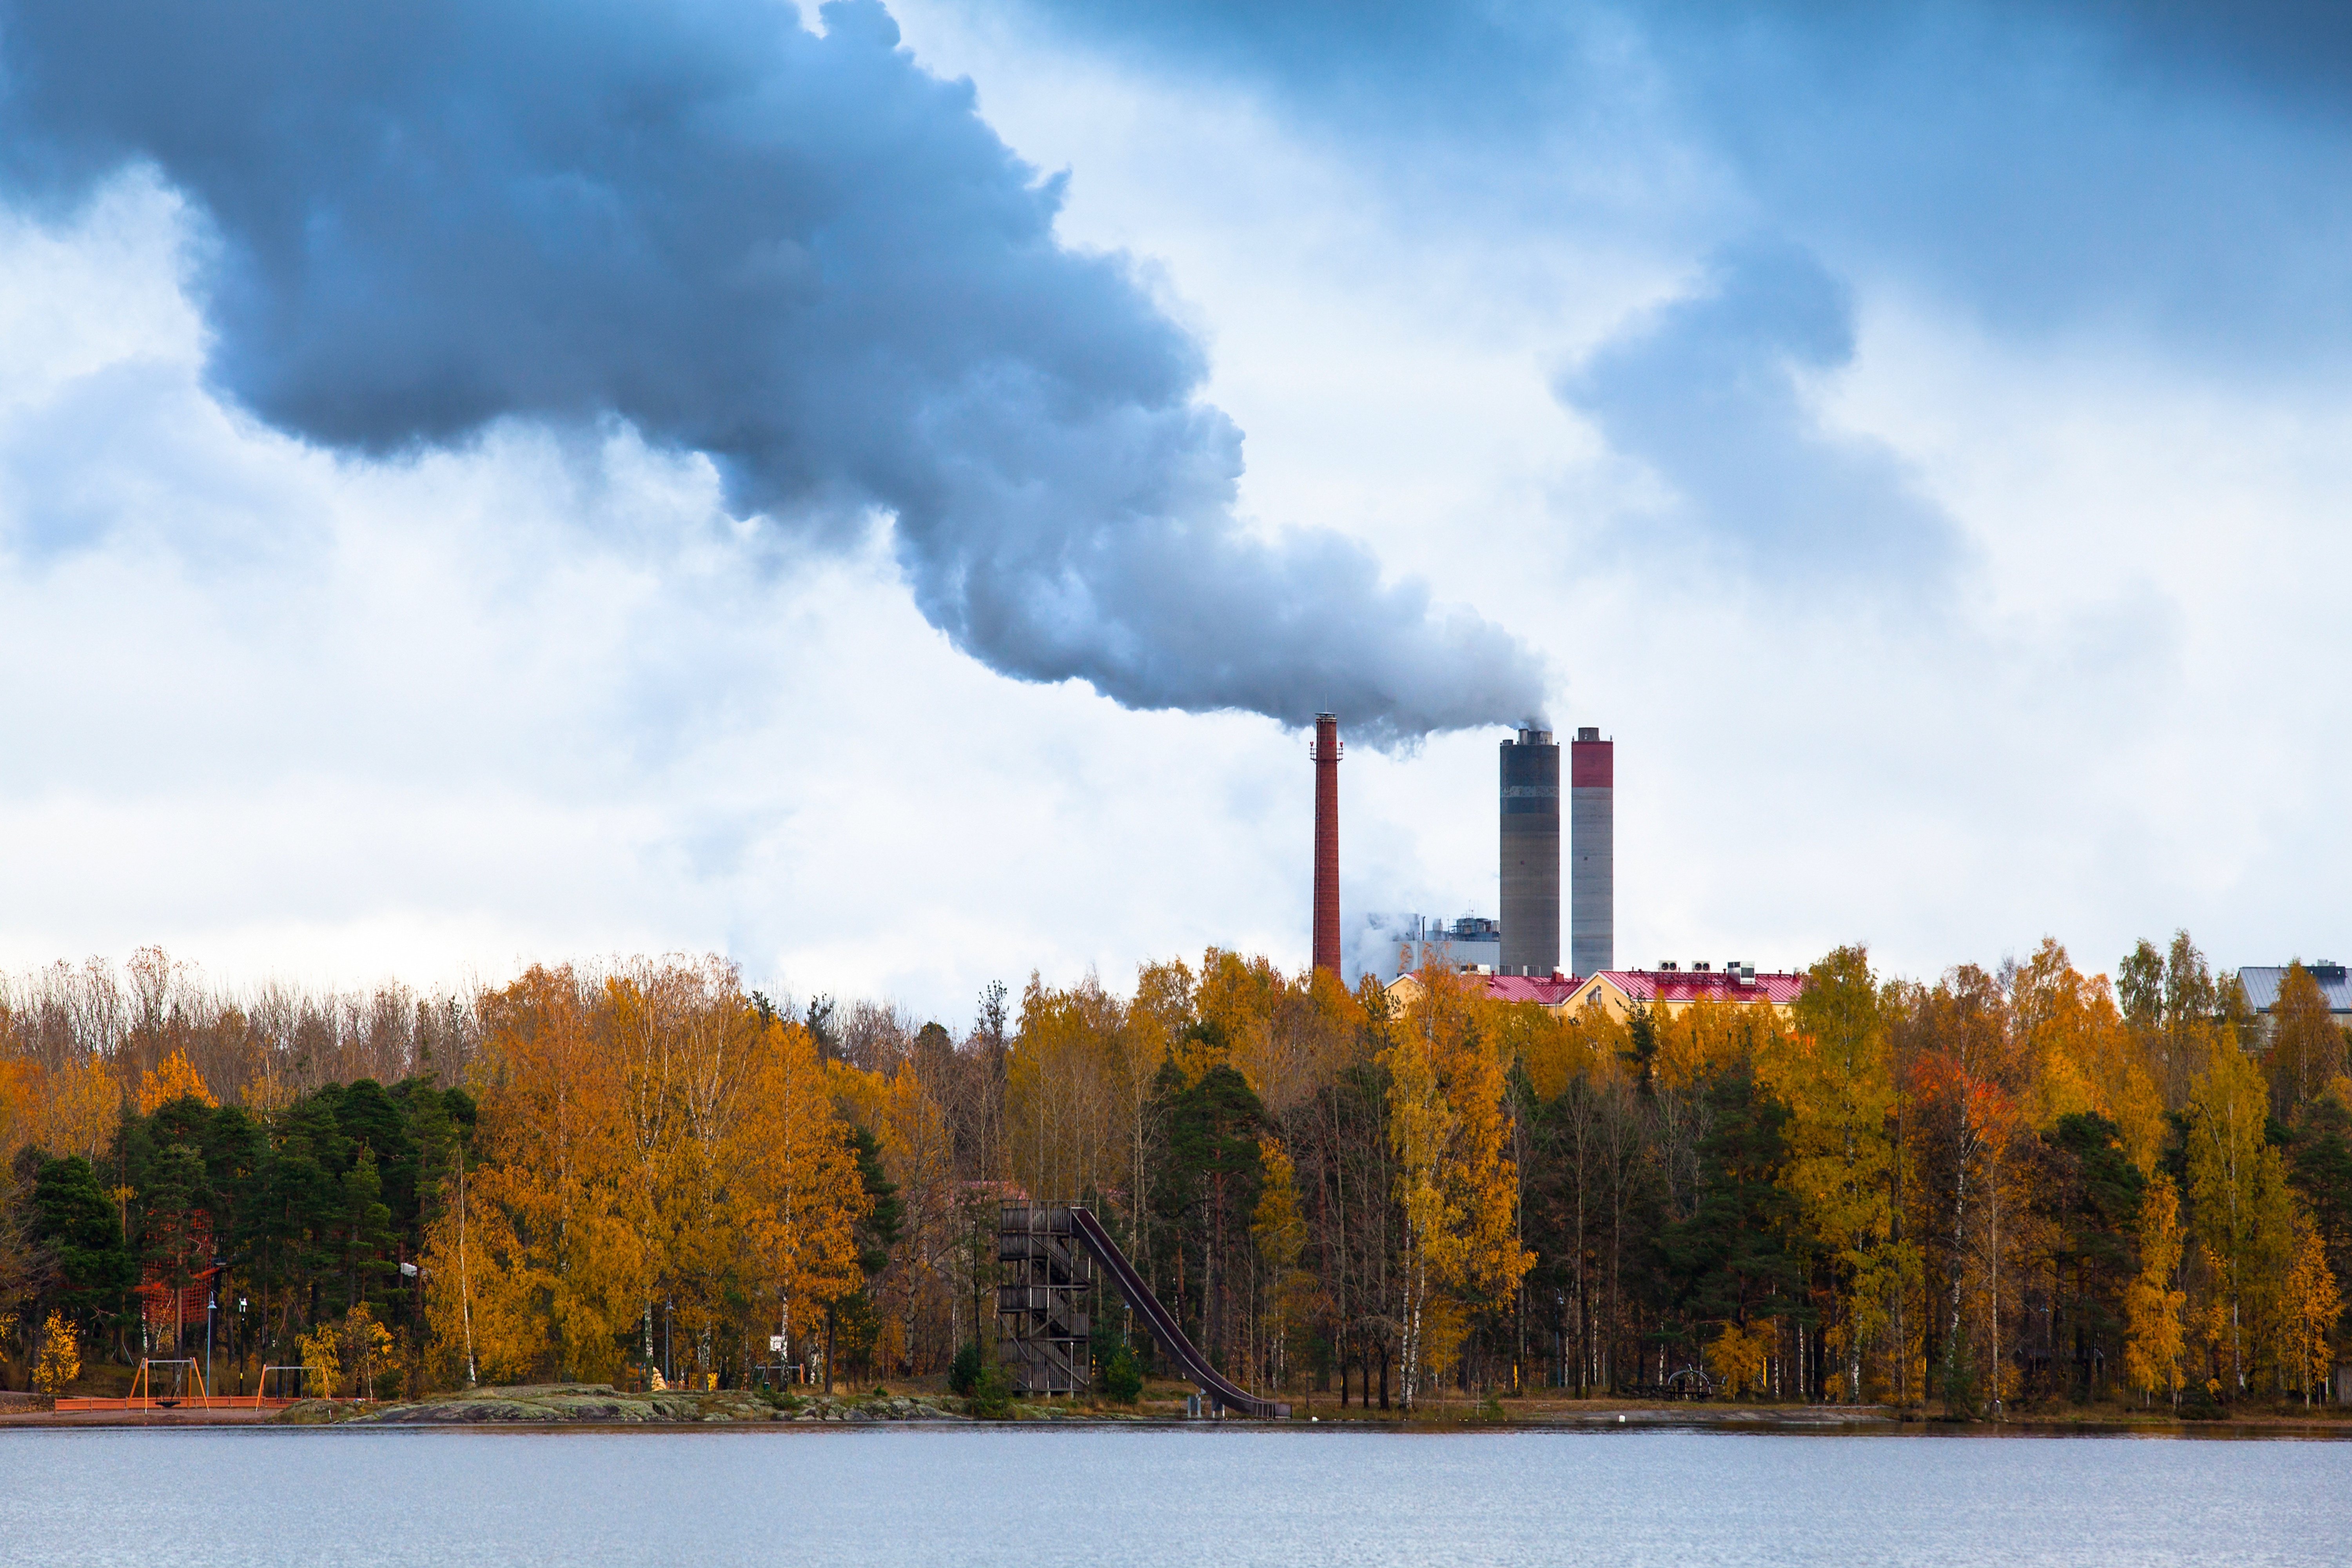 Air pollution by smoke coming out of three factory chimneys